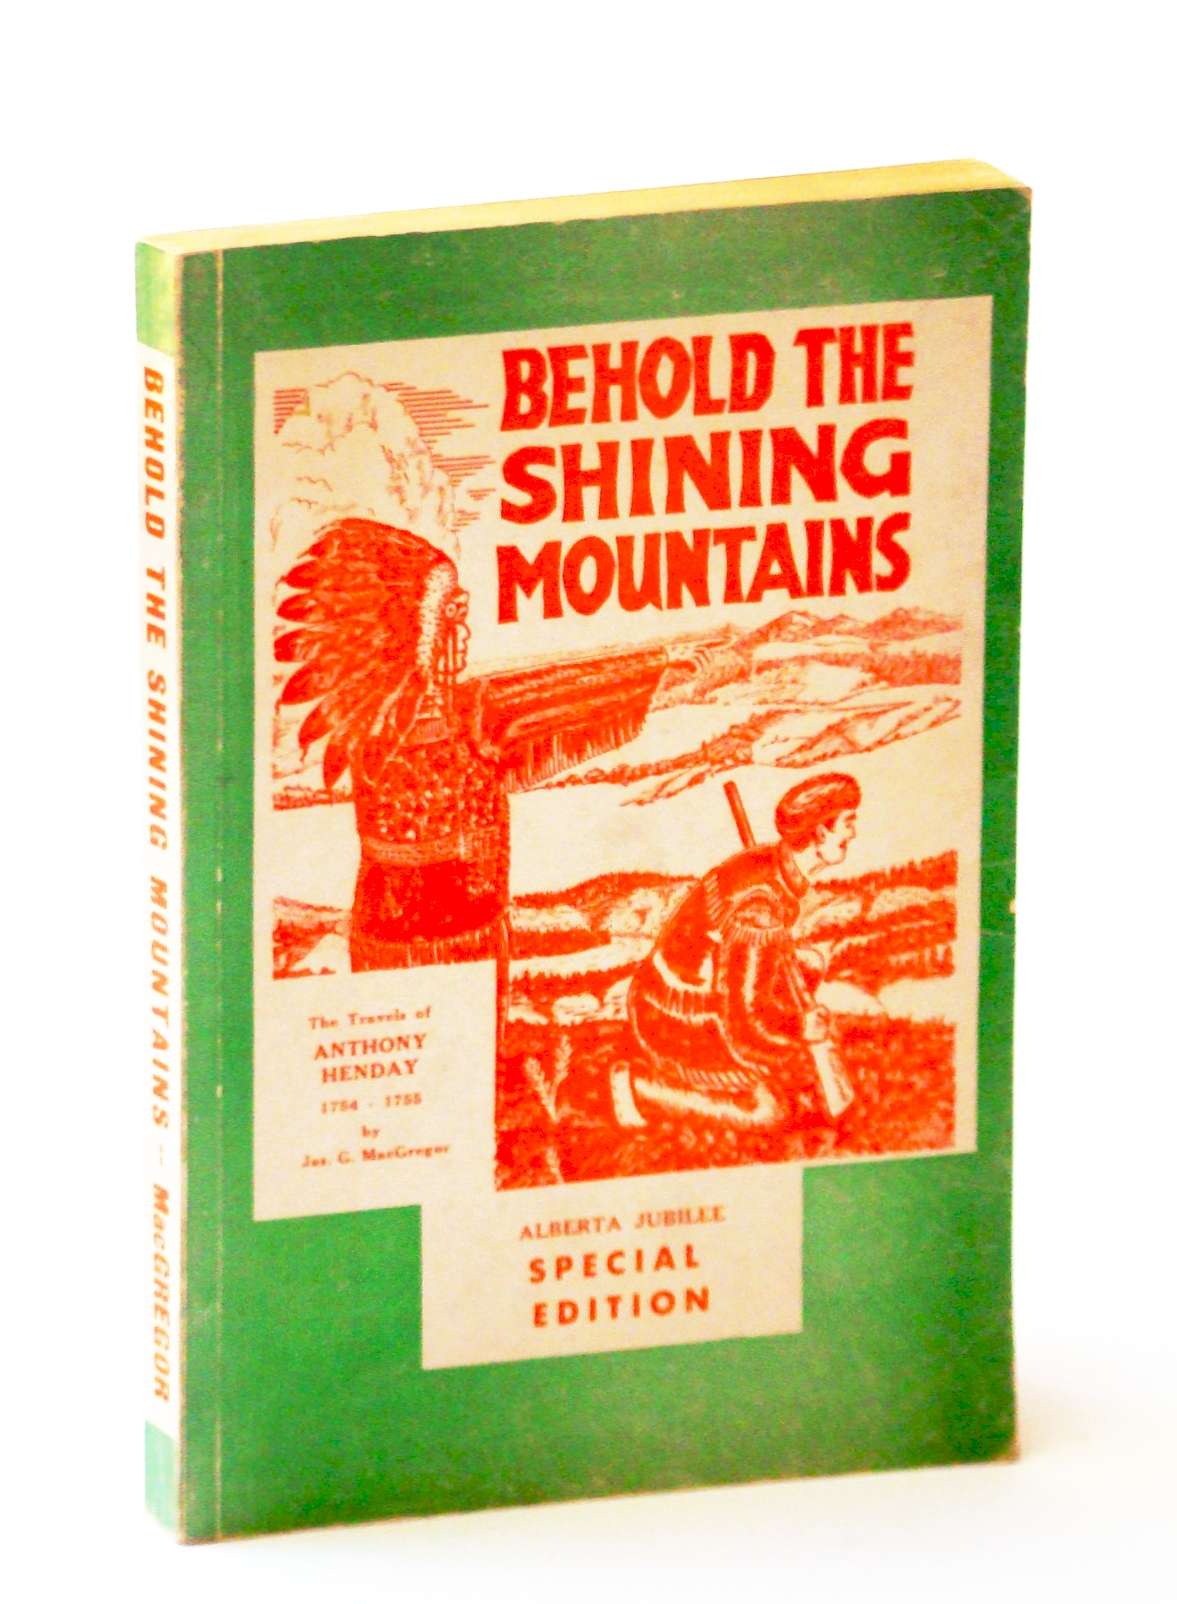 Image for Behold the Shining Mountains: Being An Account Of The Travels of Anthony Henday 1754-1755, The First White Man to Enter Alberta